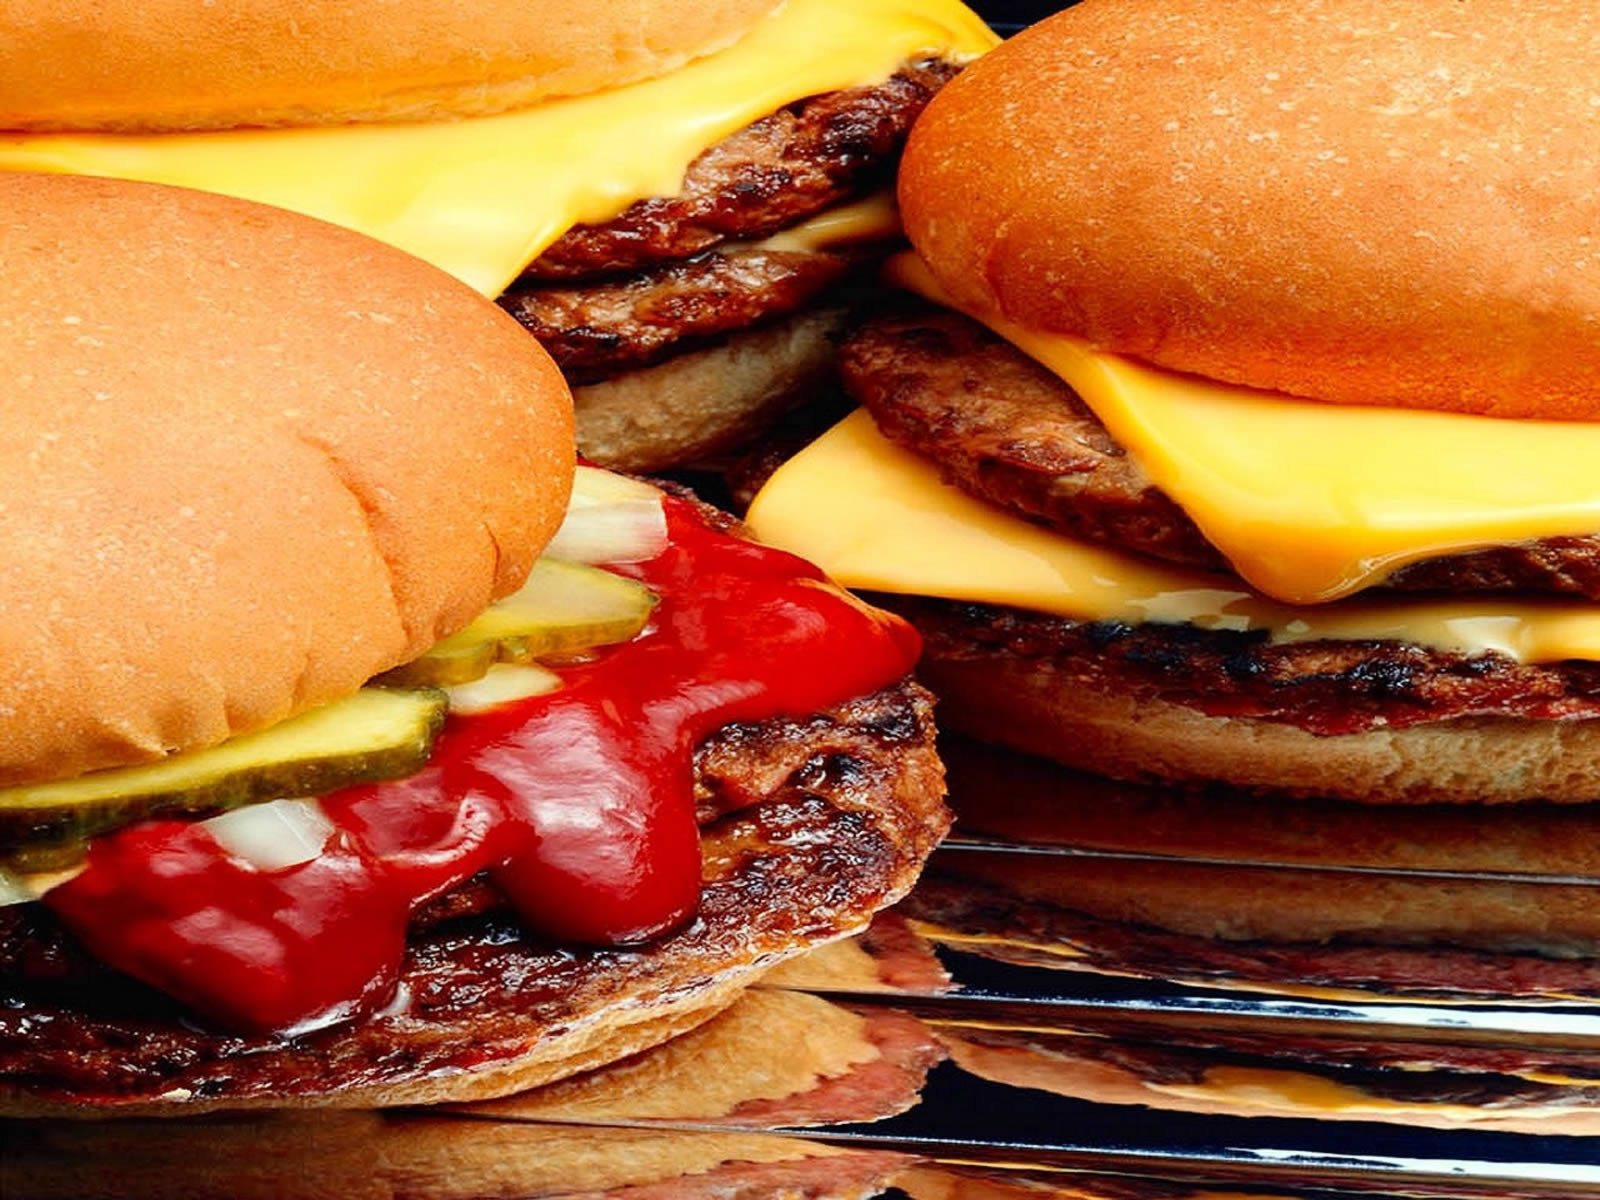 Hamburgers   Food And Drink Wallpaper Image featuring Fast Food 1600x1200